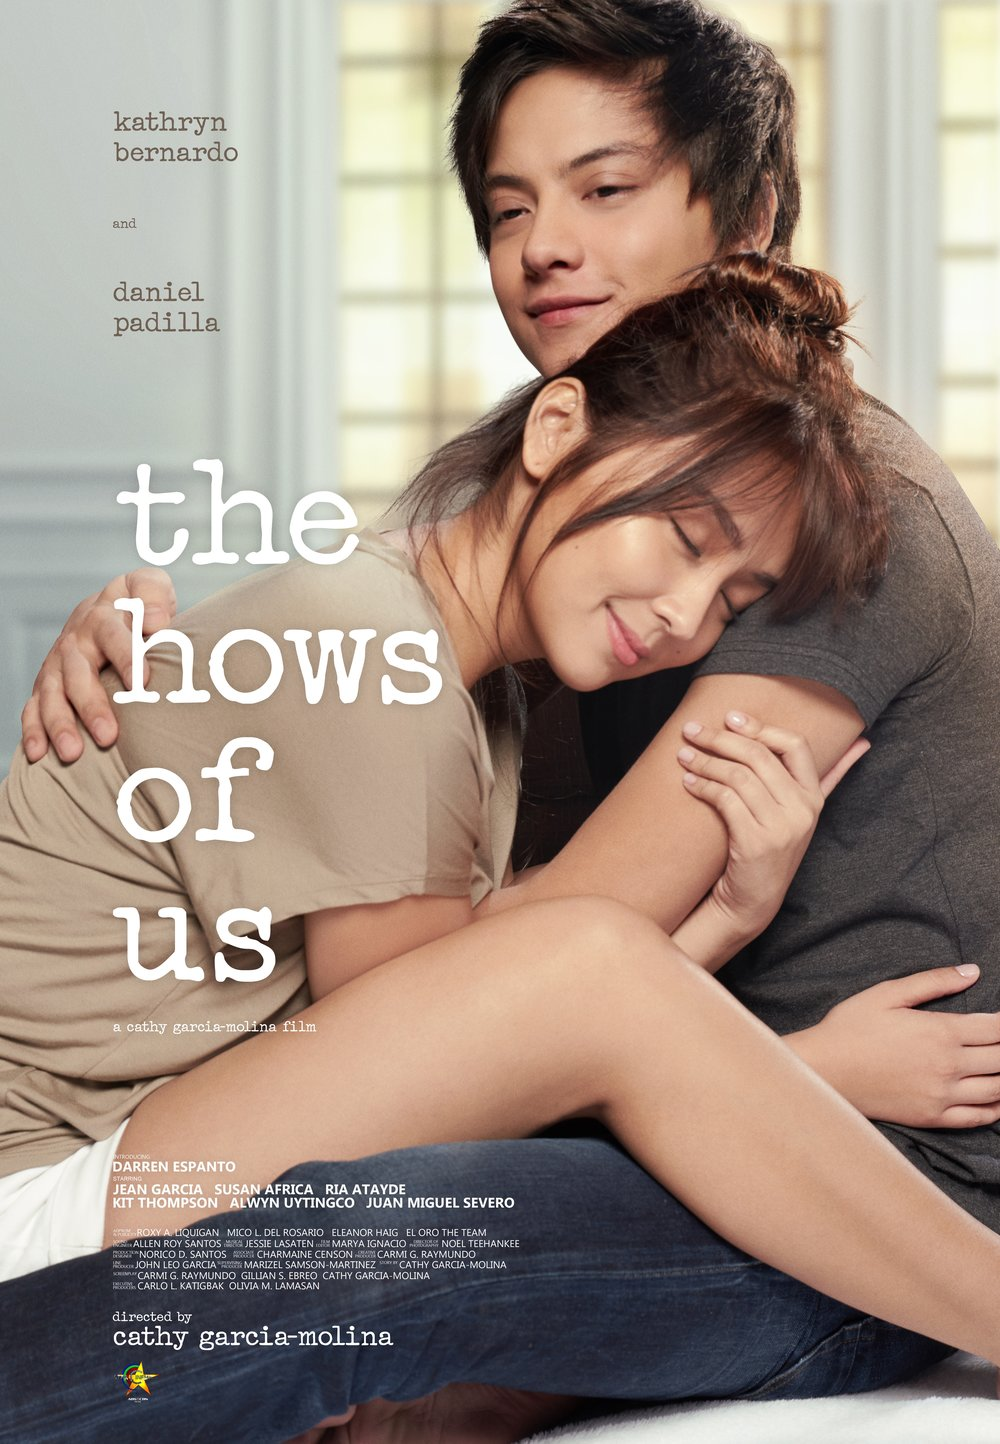 The Hows Of Us 2018 In 2020 This Is Us Movie Full Movies Online Free Free Movies Online